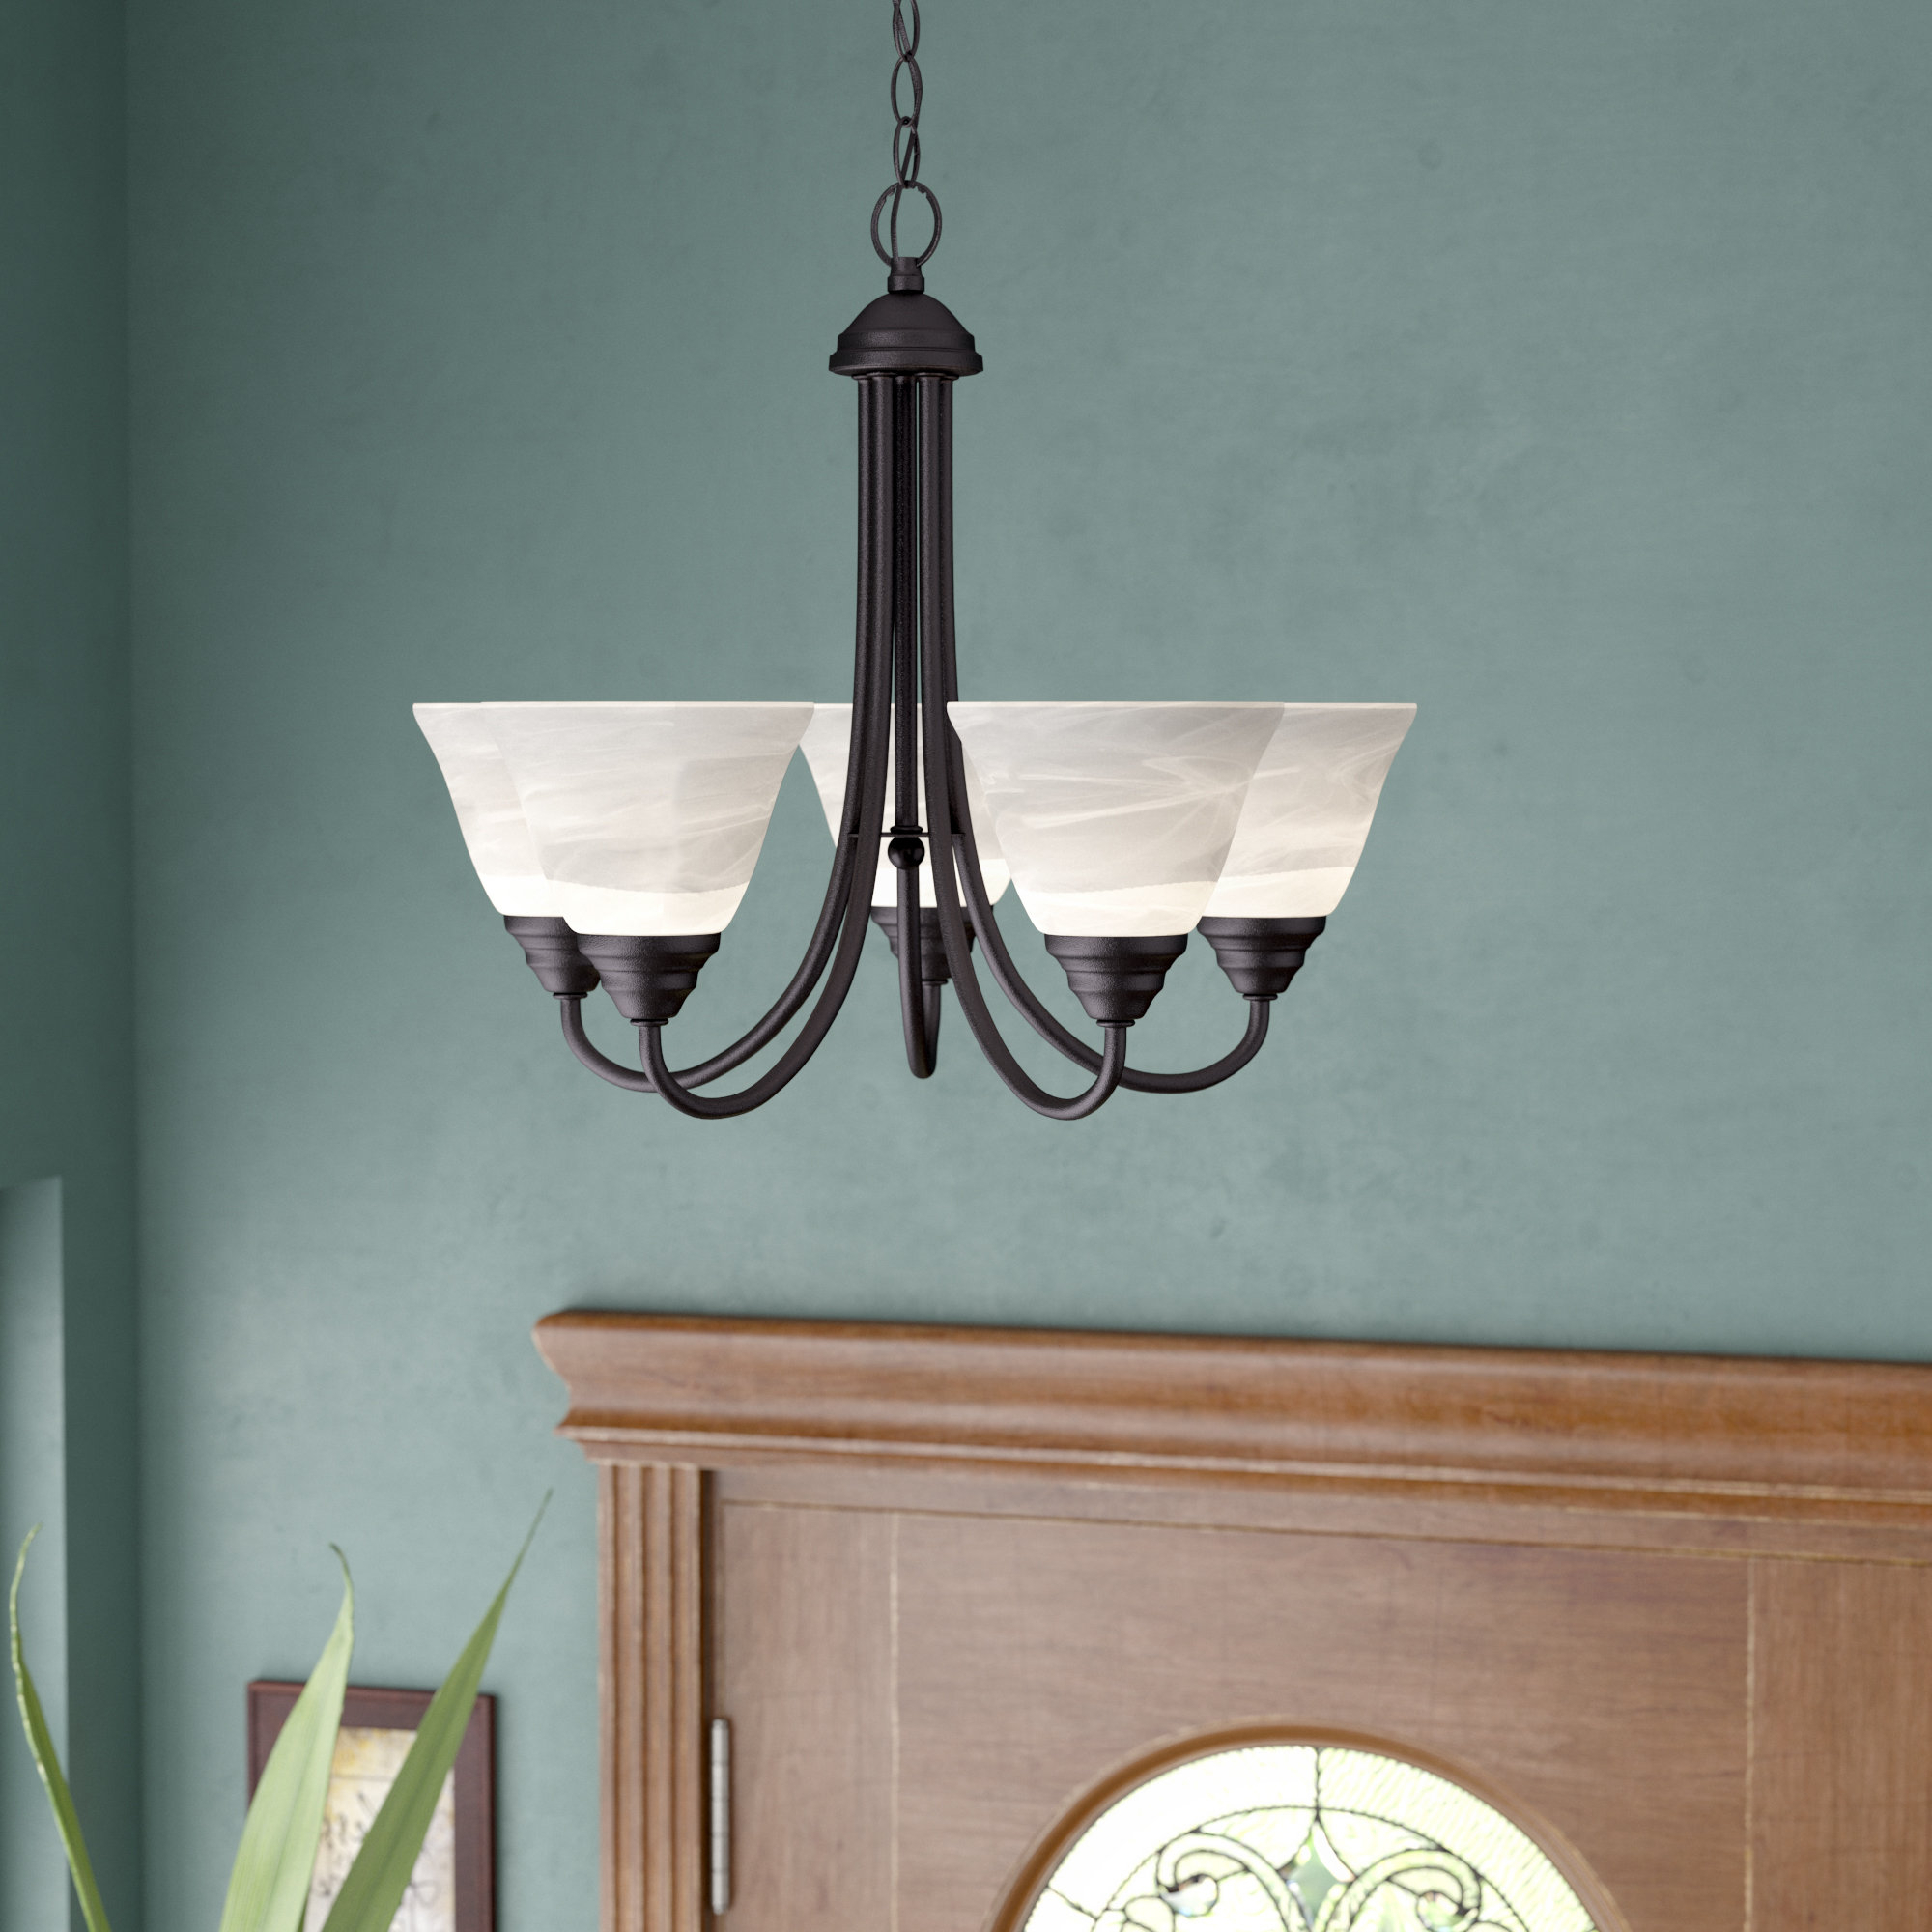 2020 Crofoot 5 Light Shaded Chandeliers With Eichelberger 5 Light Shaded Chandelier (View 4 of 20)